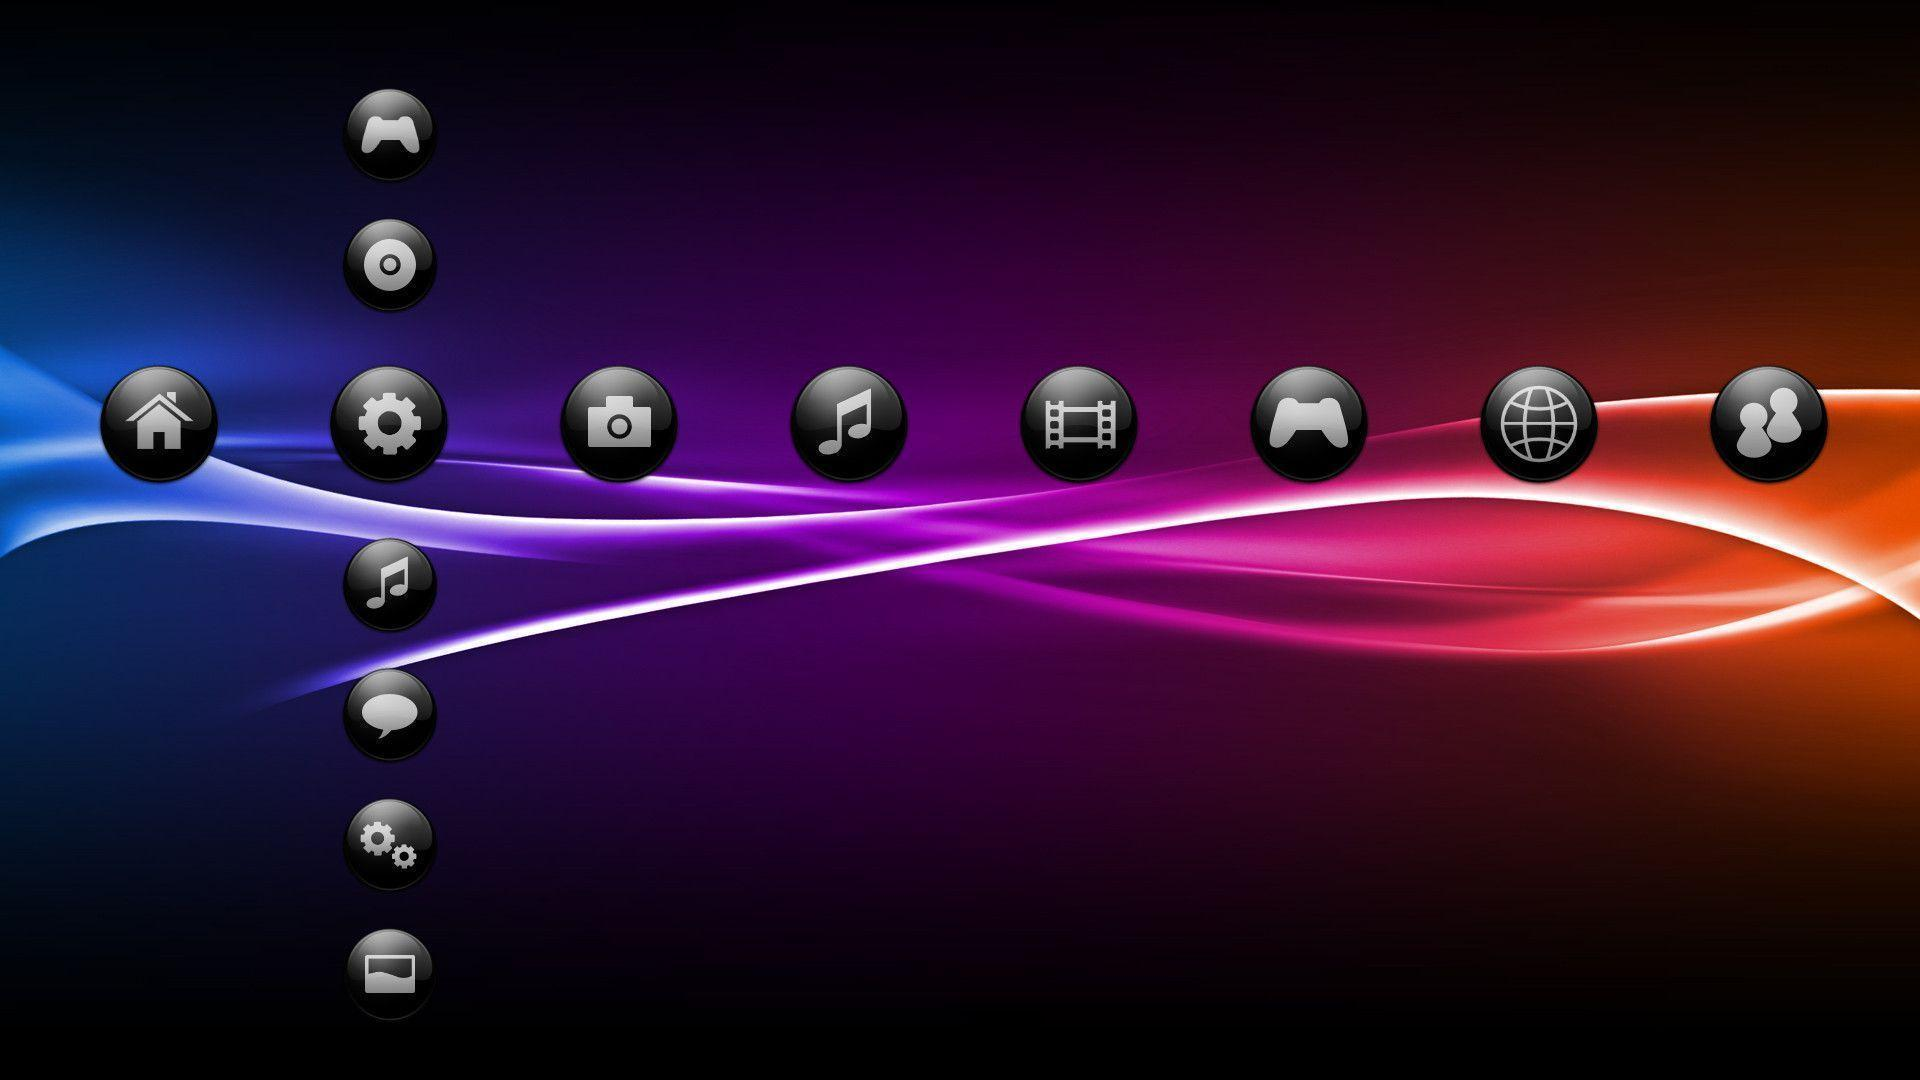 Sfere Black 3 - PS3 Theme by javierocasio on deviantART